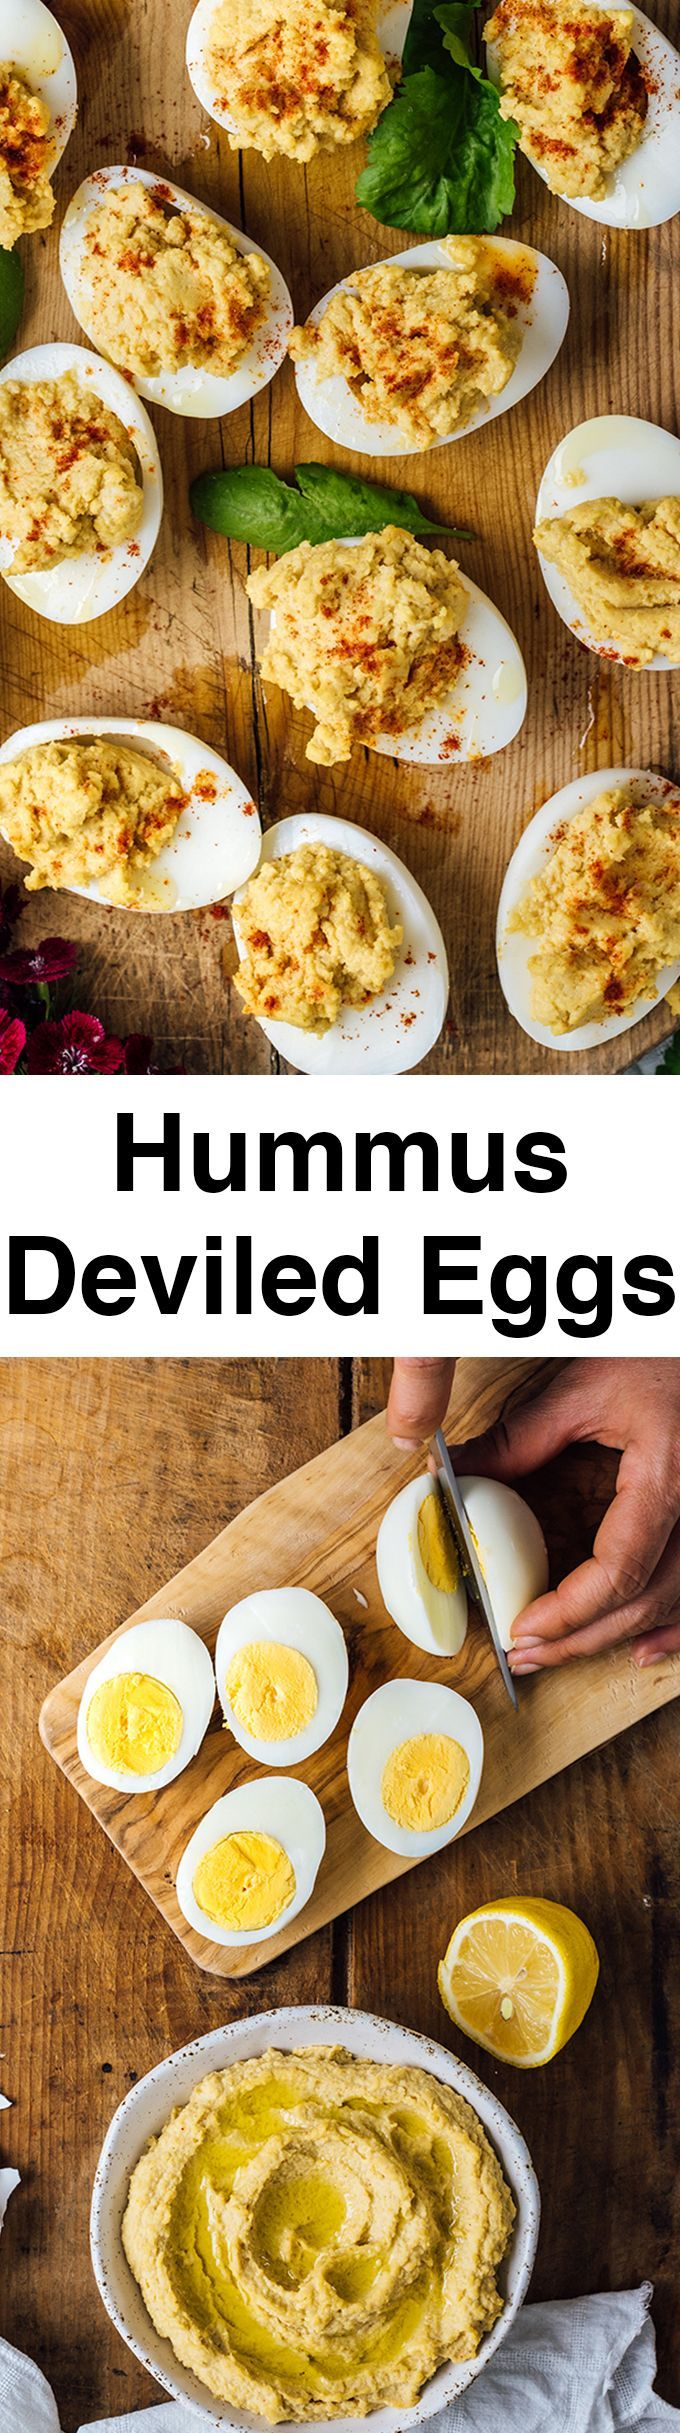 Hummus Deviled Eggs are the combination of two addictive appetizers. Creamy hummus replaces mayonnaise and makes perfect mayo-free deviled eggs. They will disappear so fast that everyone will beg for more.